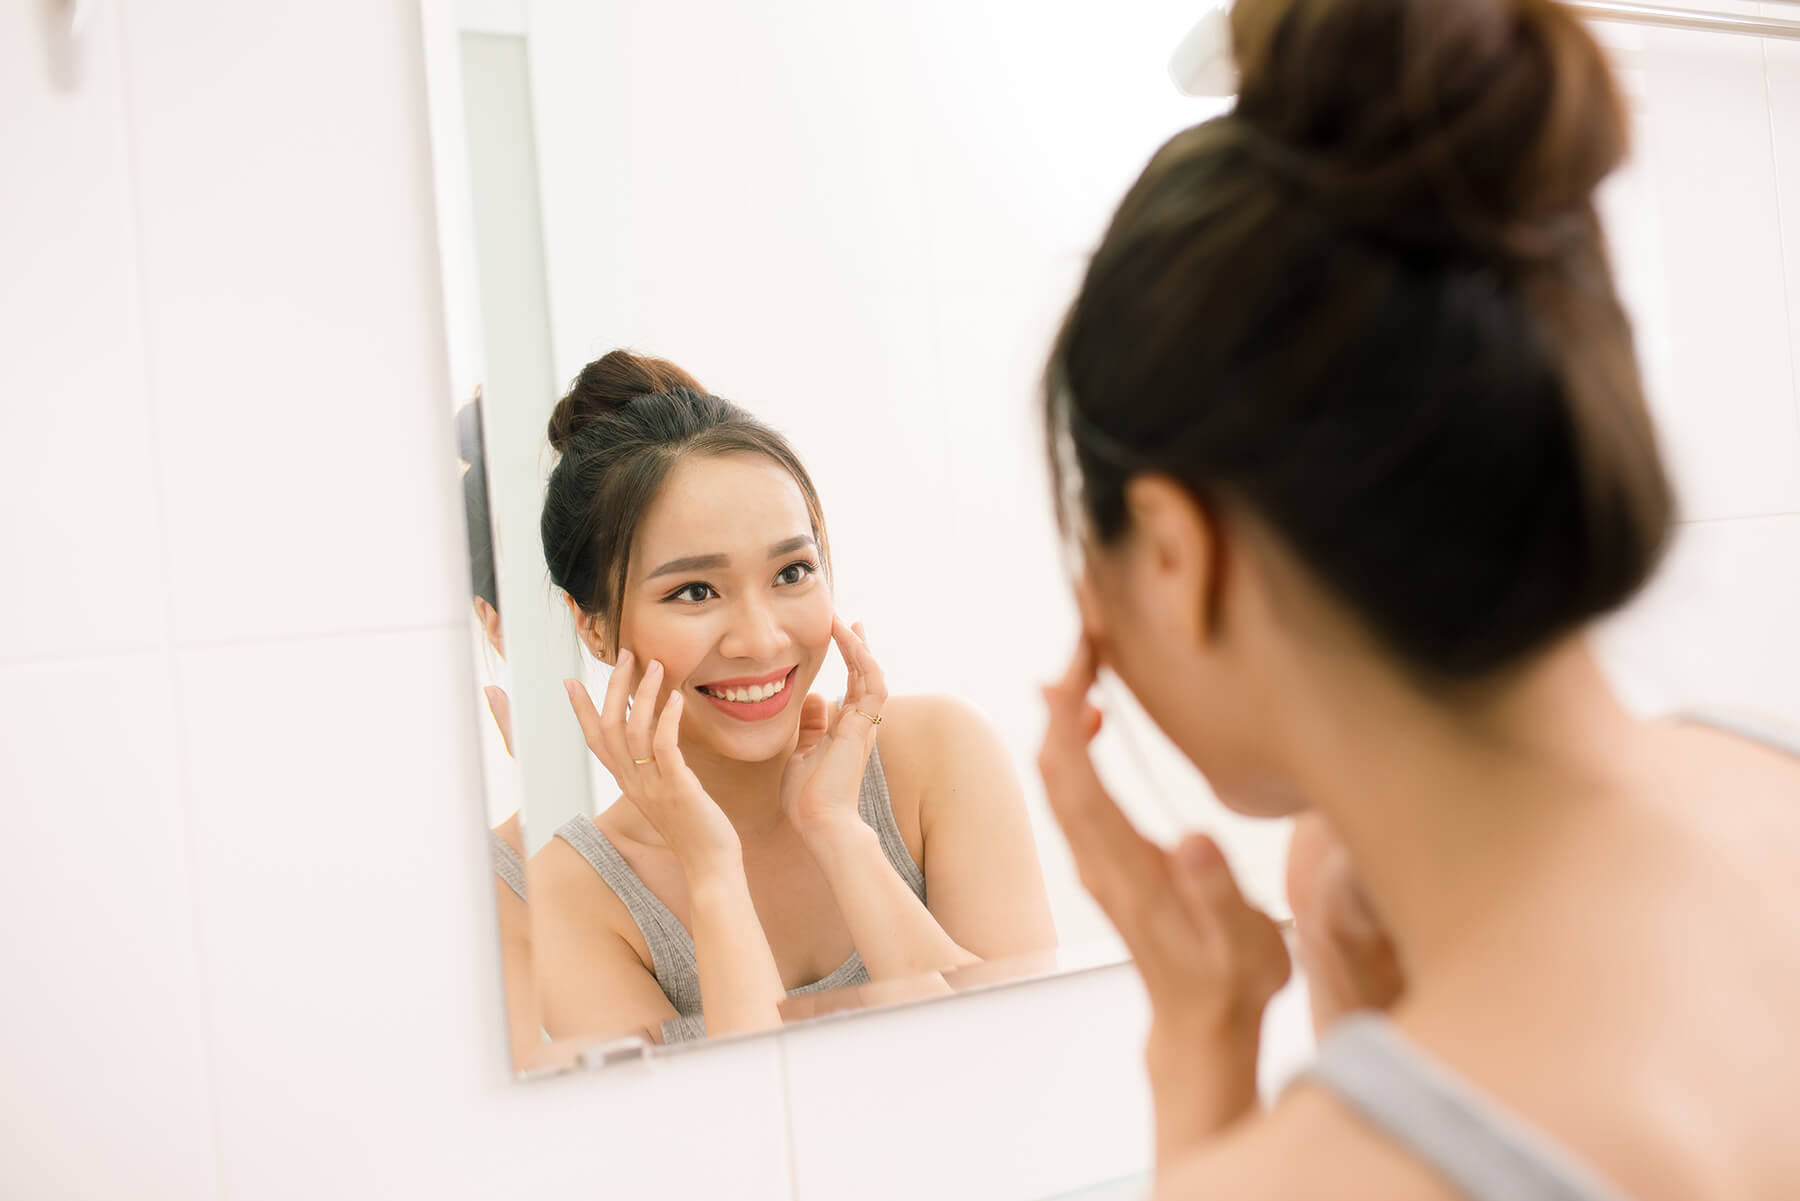 Young woman smiling in mirror